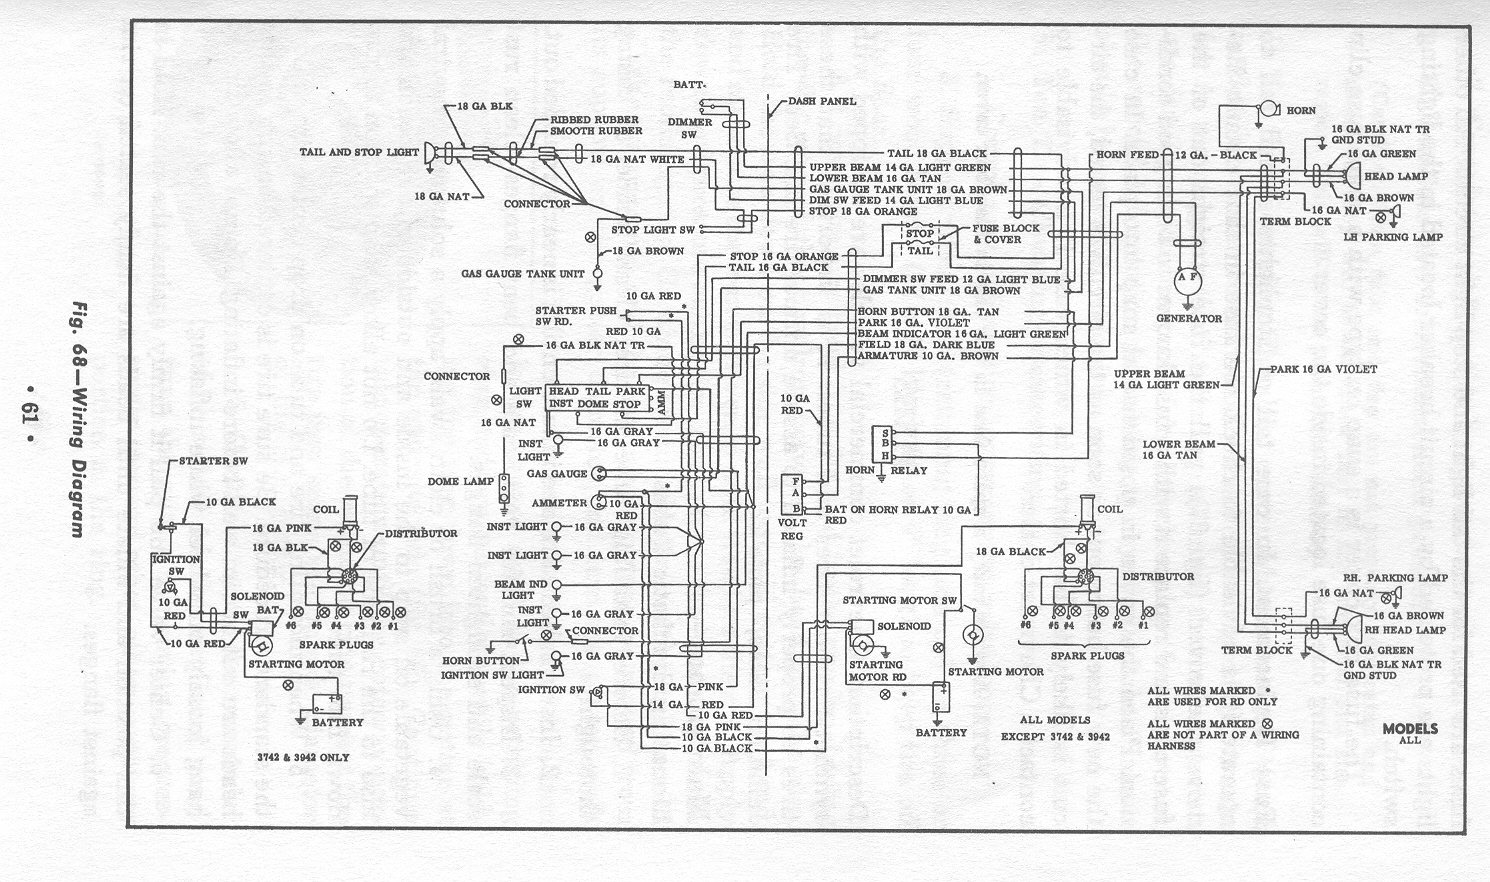 61 Wiring diagram